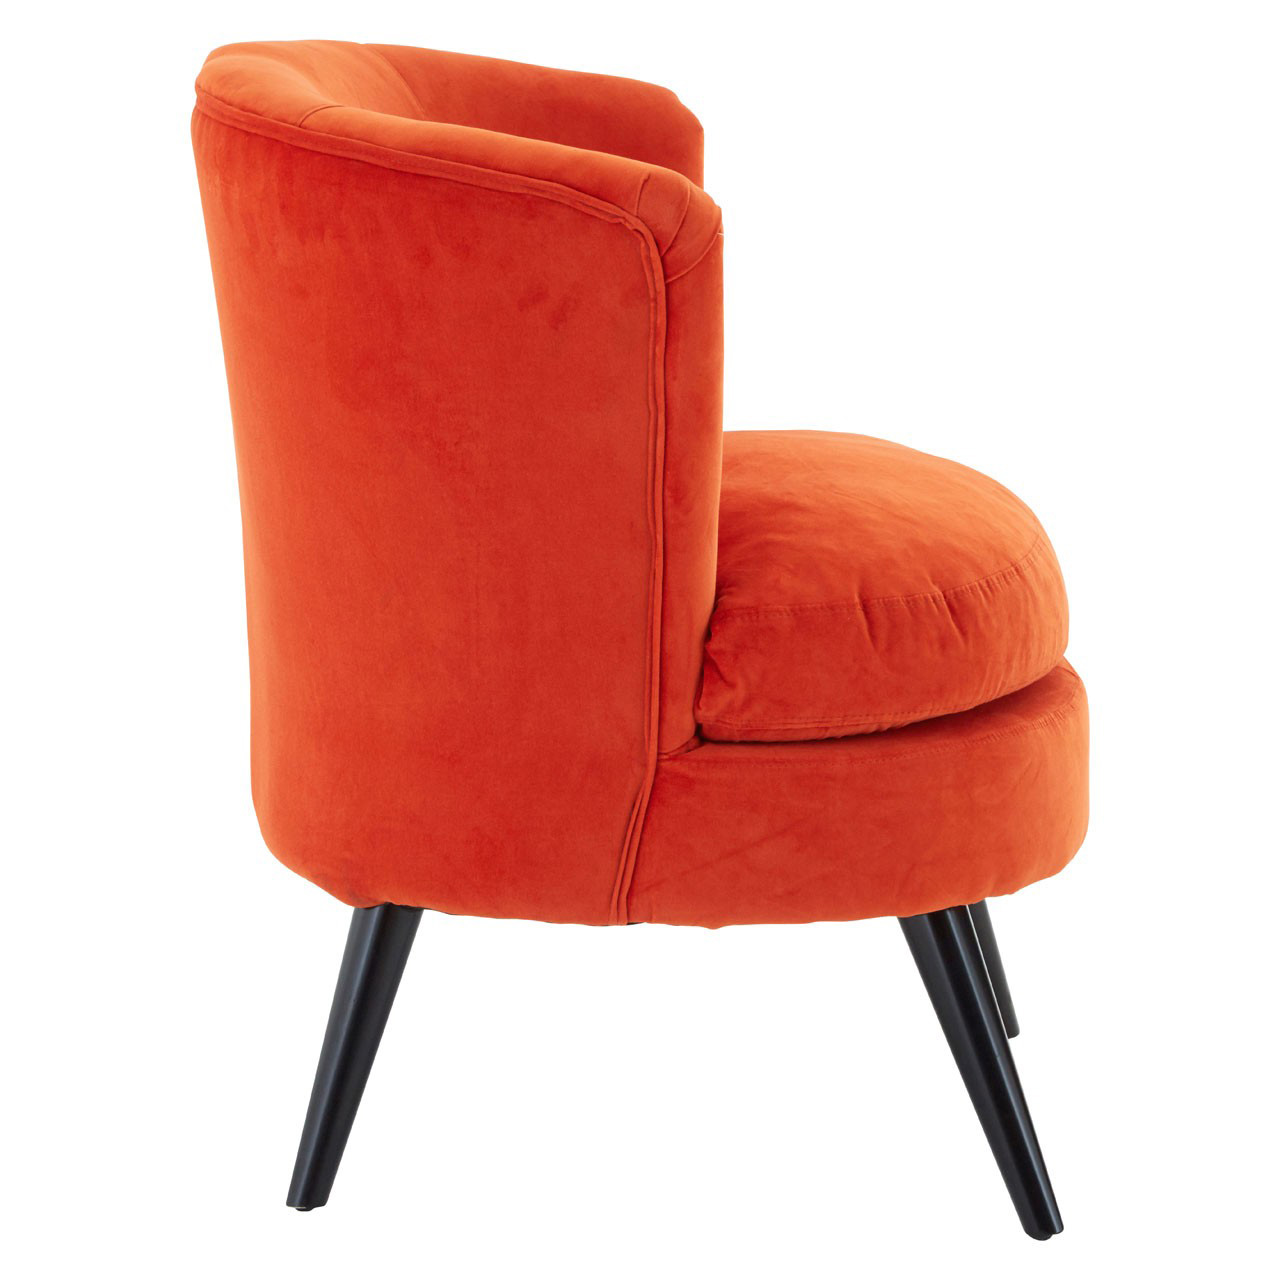 Orange Plush Velvet Round Armchair - Dark Wooden Legs | FADS